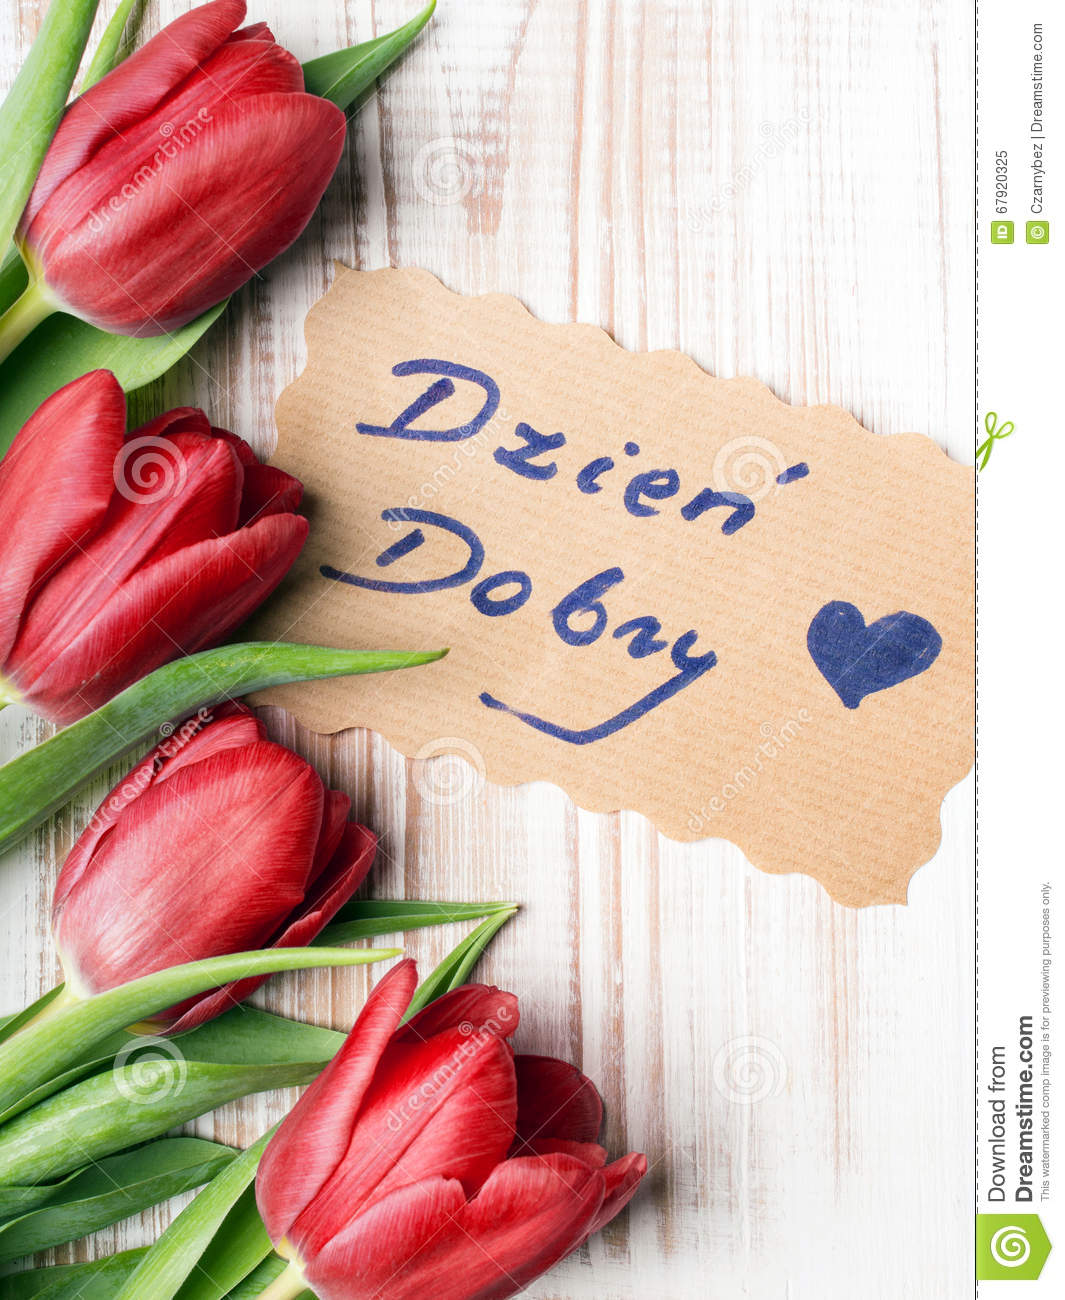 Good Morning Beautiful In Polish : Polish words good morning and bouquet of tulips stock